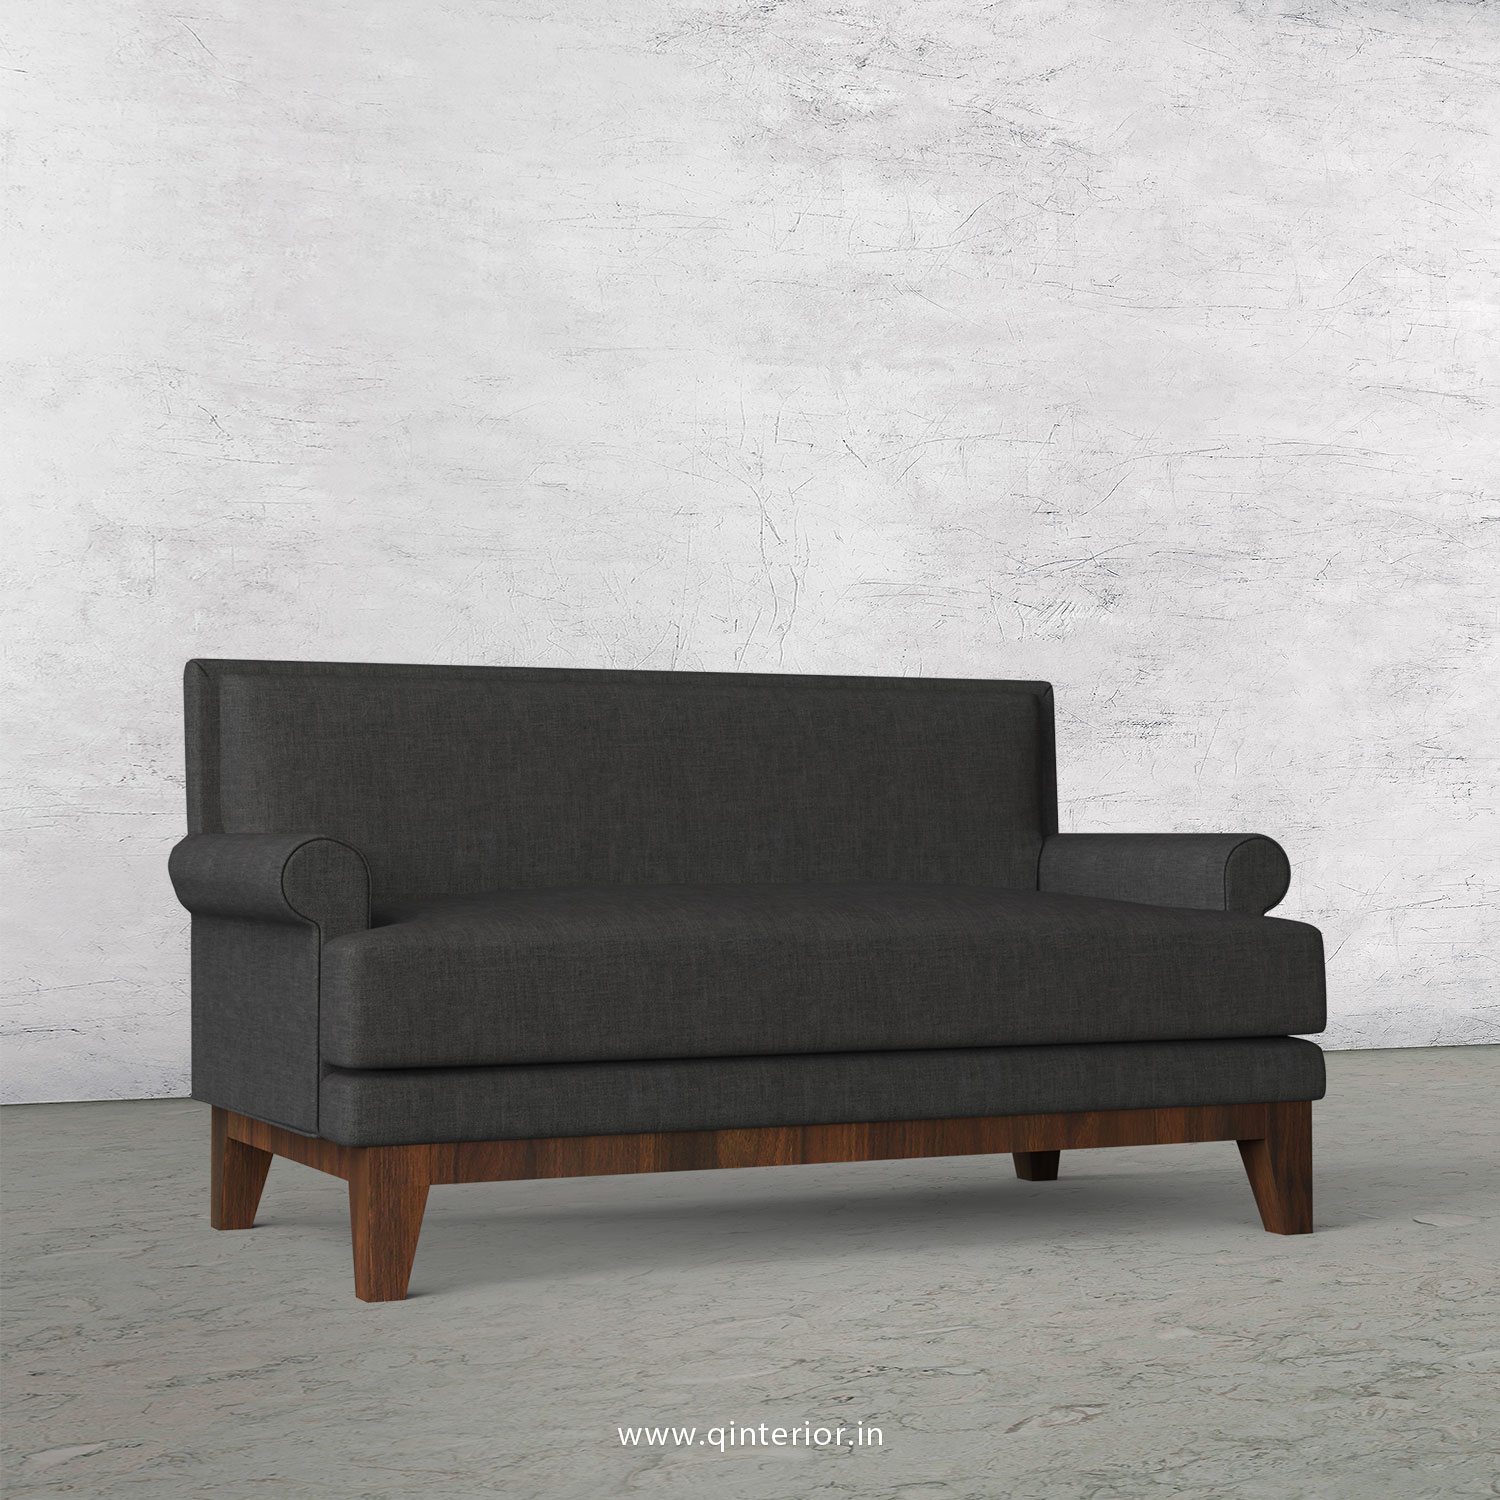 Aviana 2 Seater Sofa in Cotton Plain - SFA001 CP09